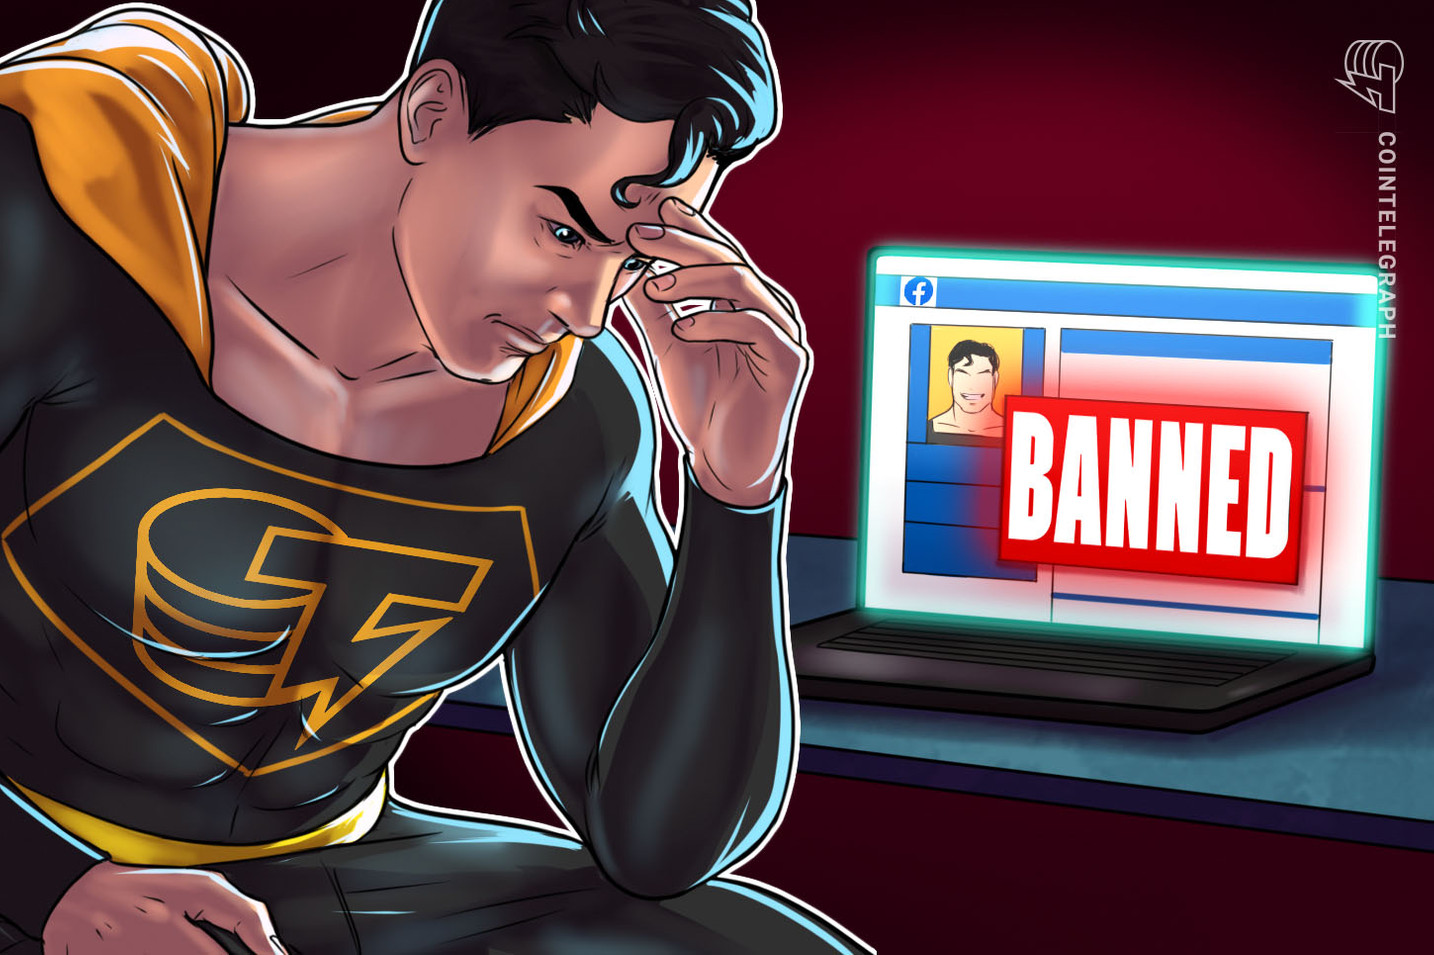 UPDATED: Cointelegraph Facebook Page Unpublished, One Month and Counting